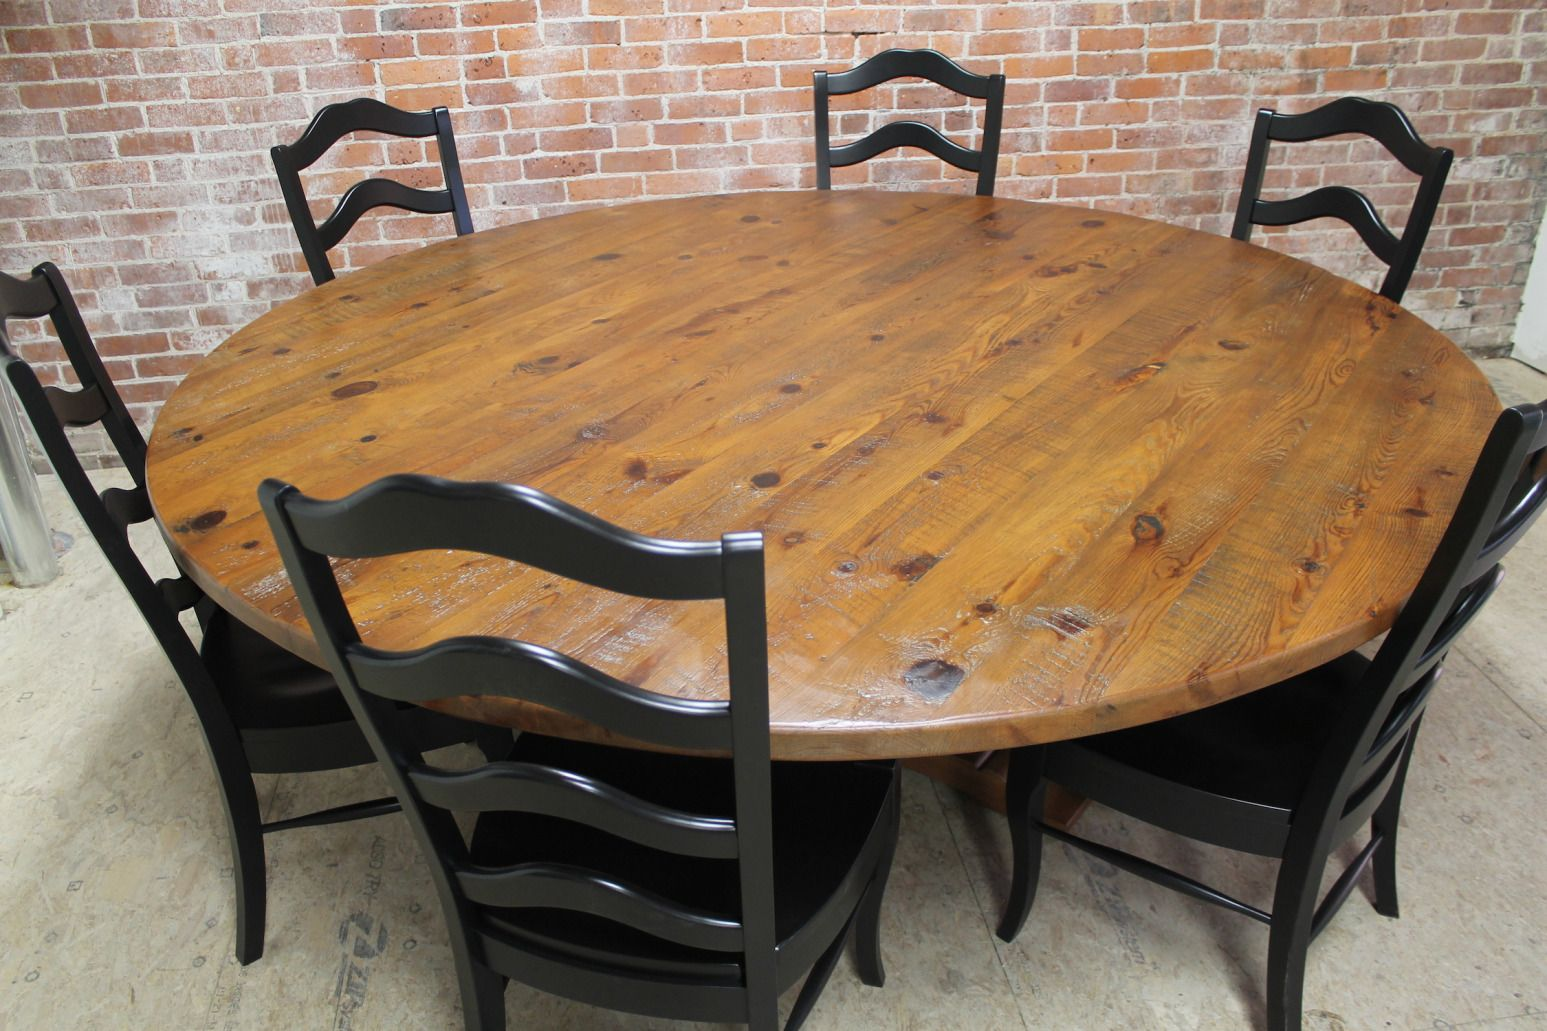 Pin by Annora on round end table | Round farmhouse table ...